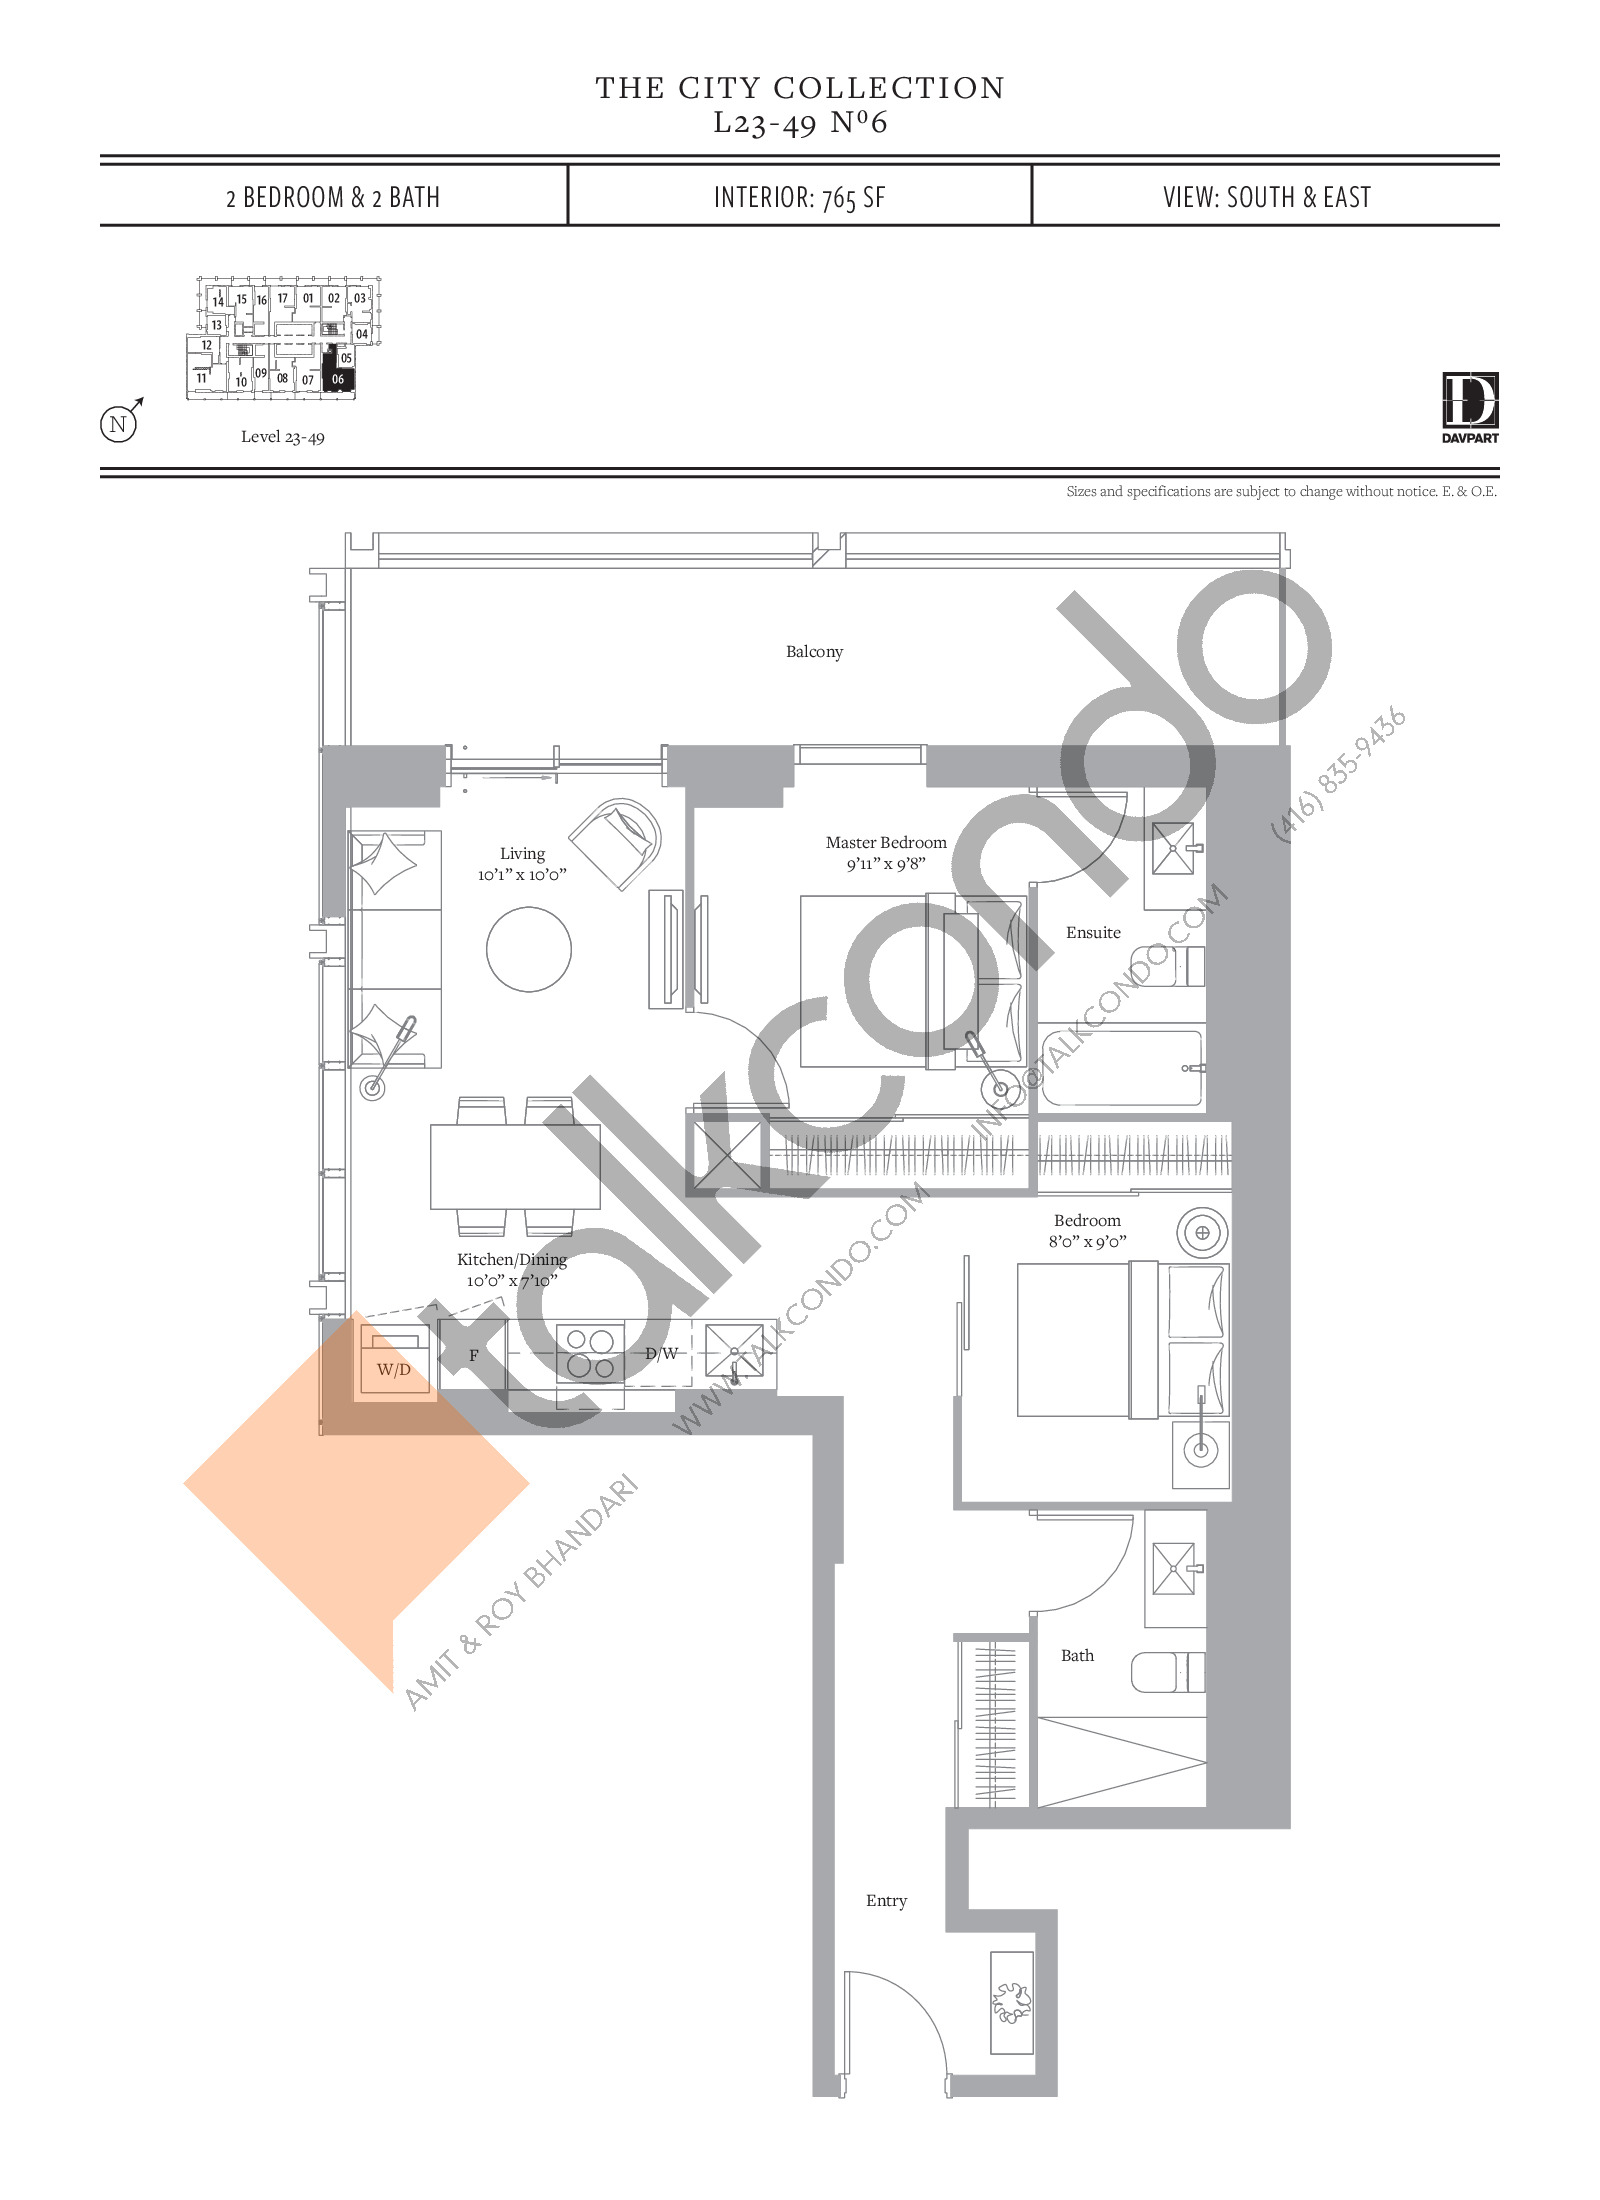 No 6 - The City Collection Floor Plan at The United Bldg. Condos - 765 sq.ft